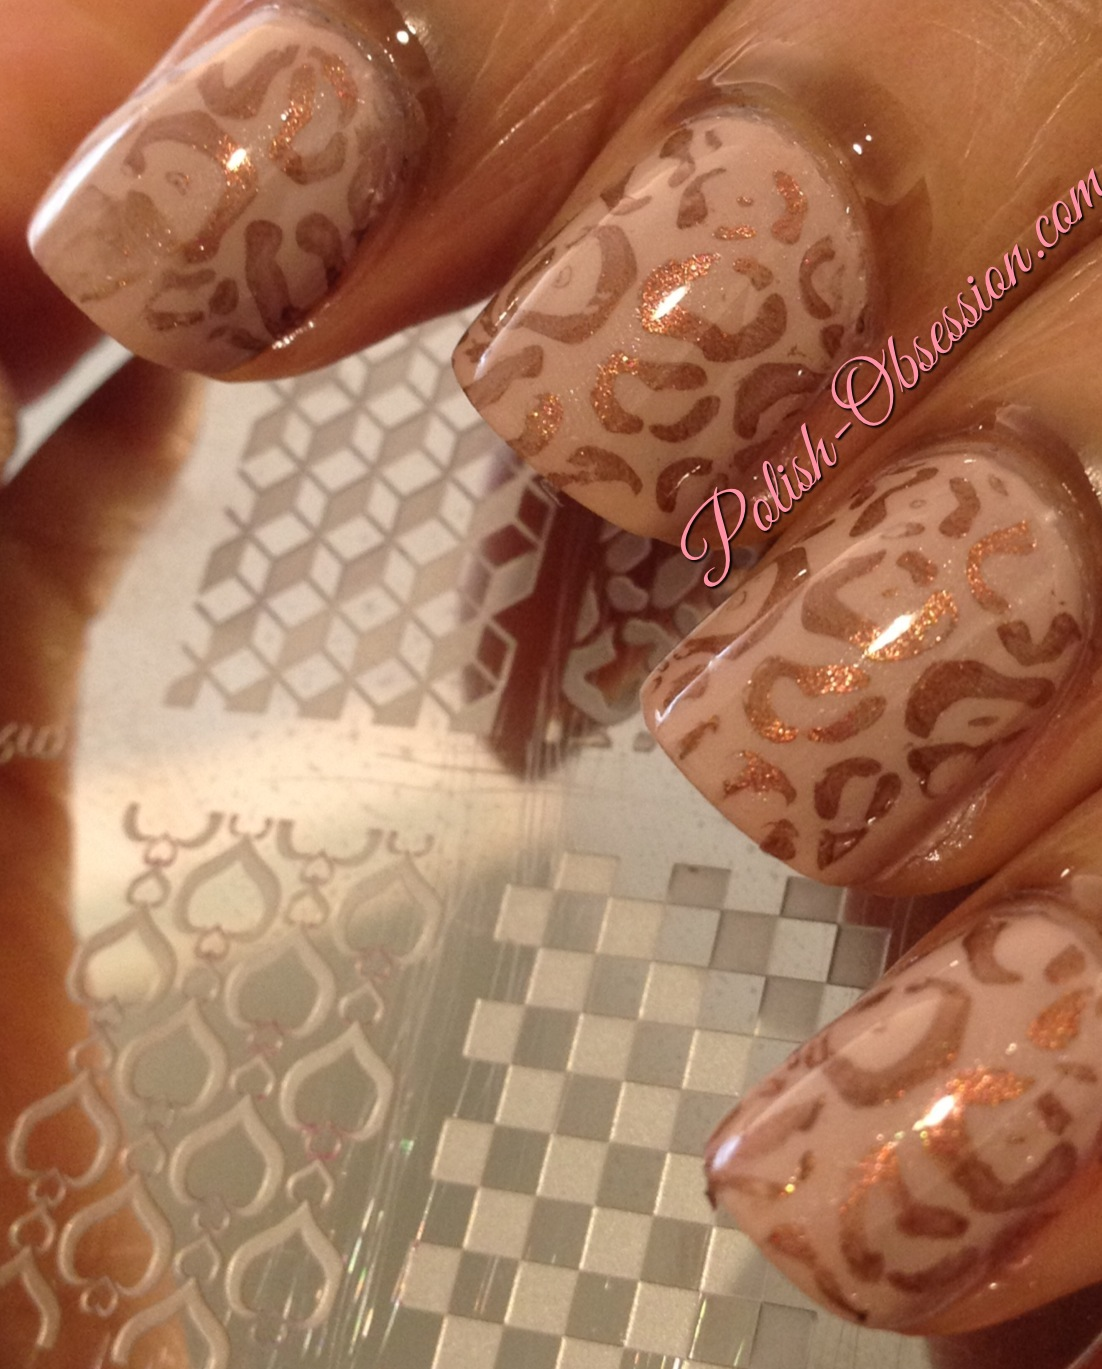 Nail Polish Canada - Stamping Plate Review | Polish Obsession